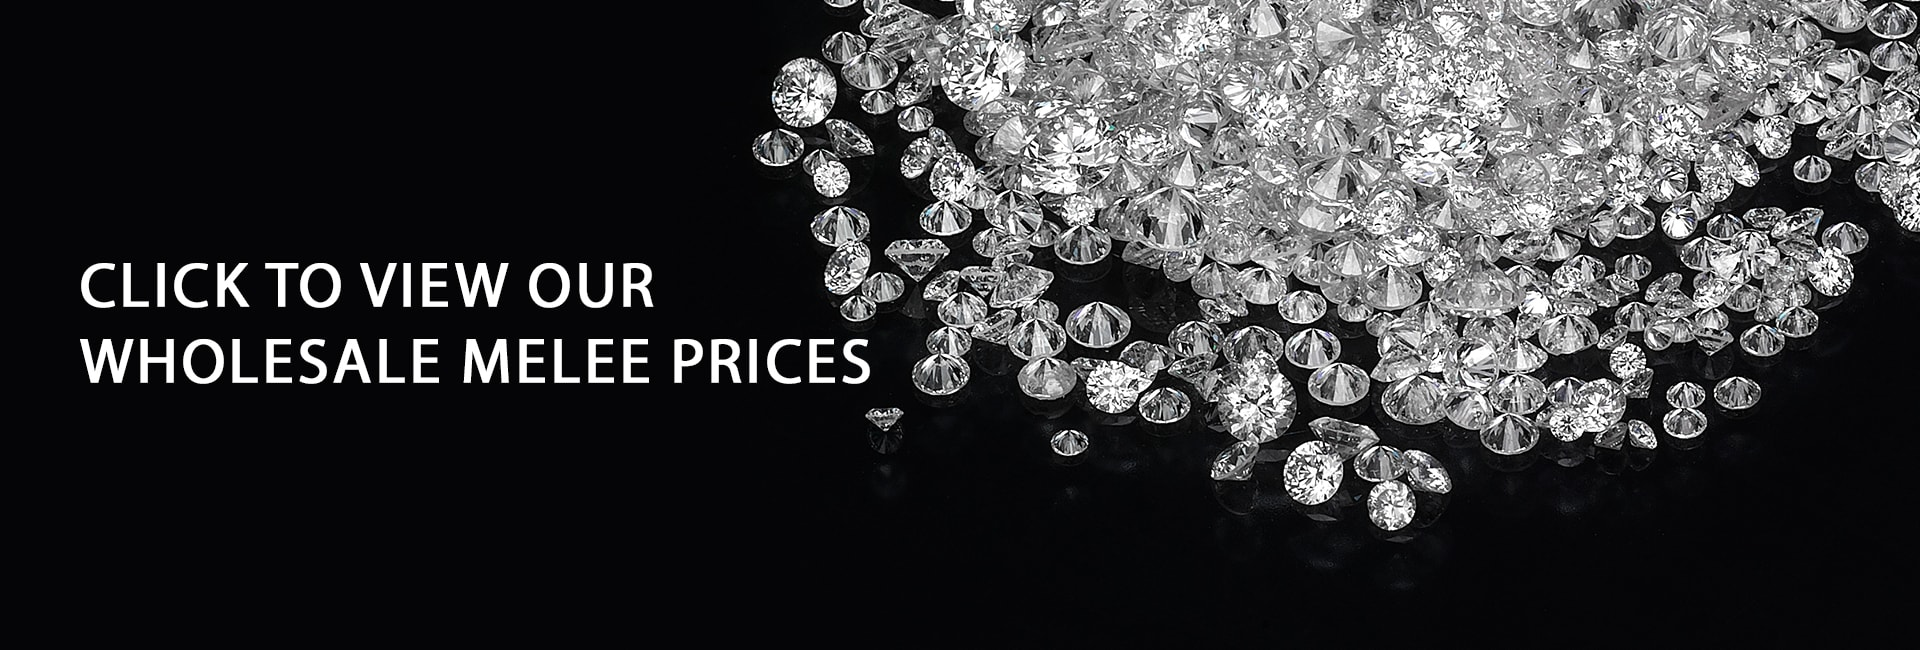 Click to view our wholesale melee prices